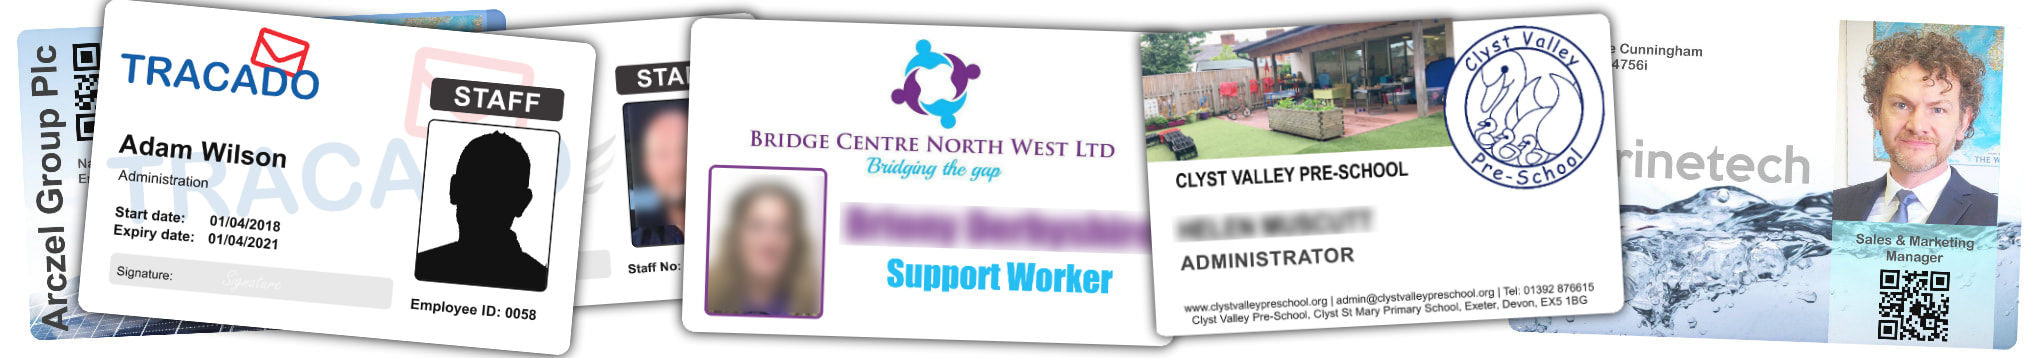 St. Alban's examples of staff photo ID cards | samples of employee Identity card printing | Workers ID cards printed in